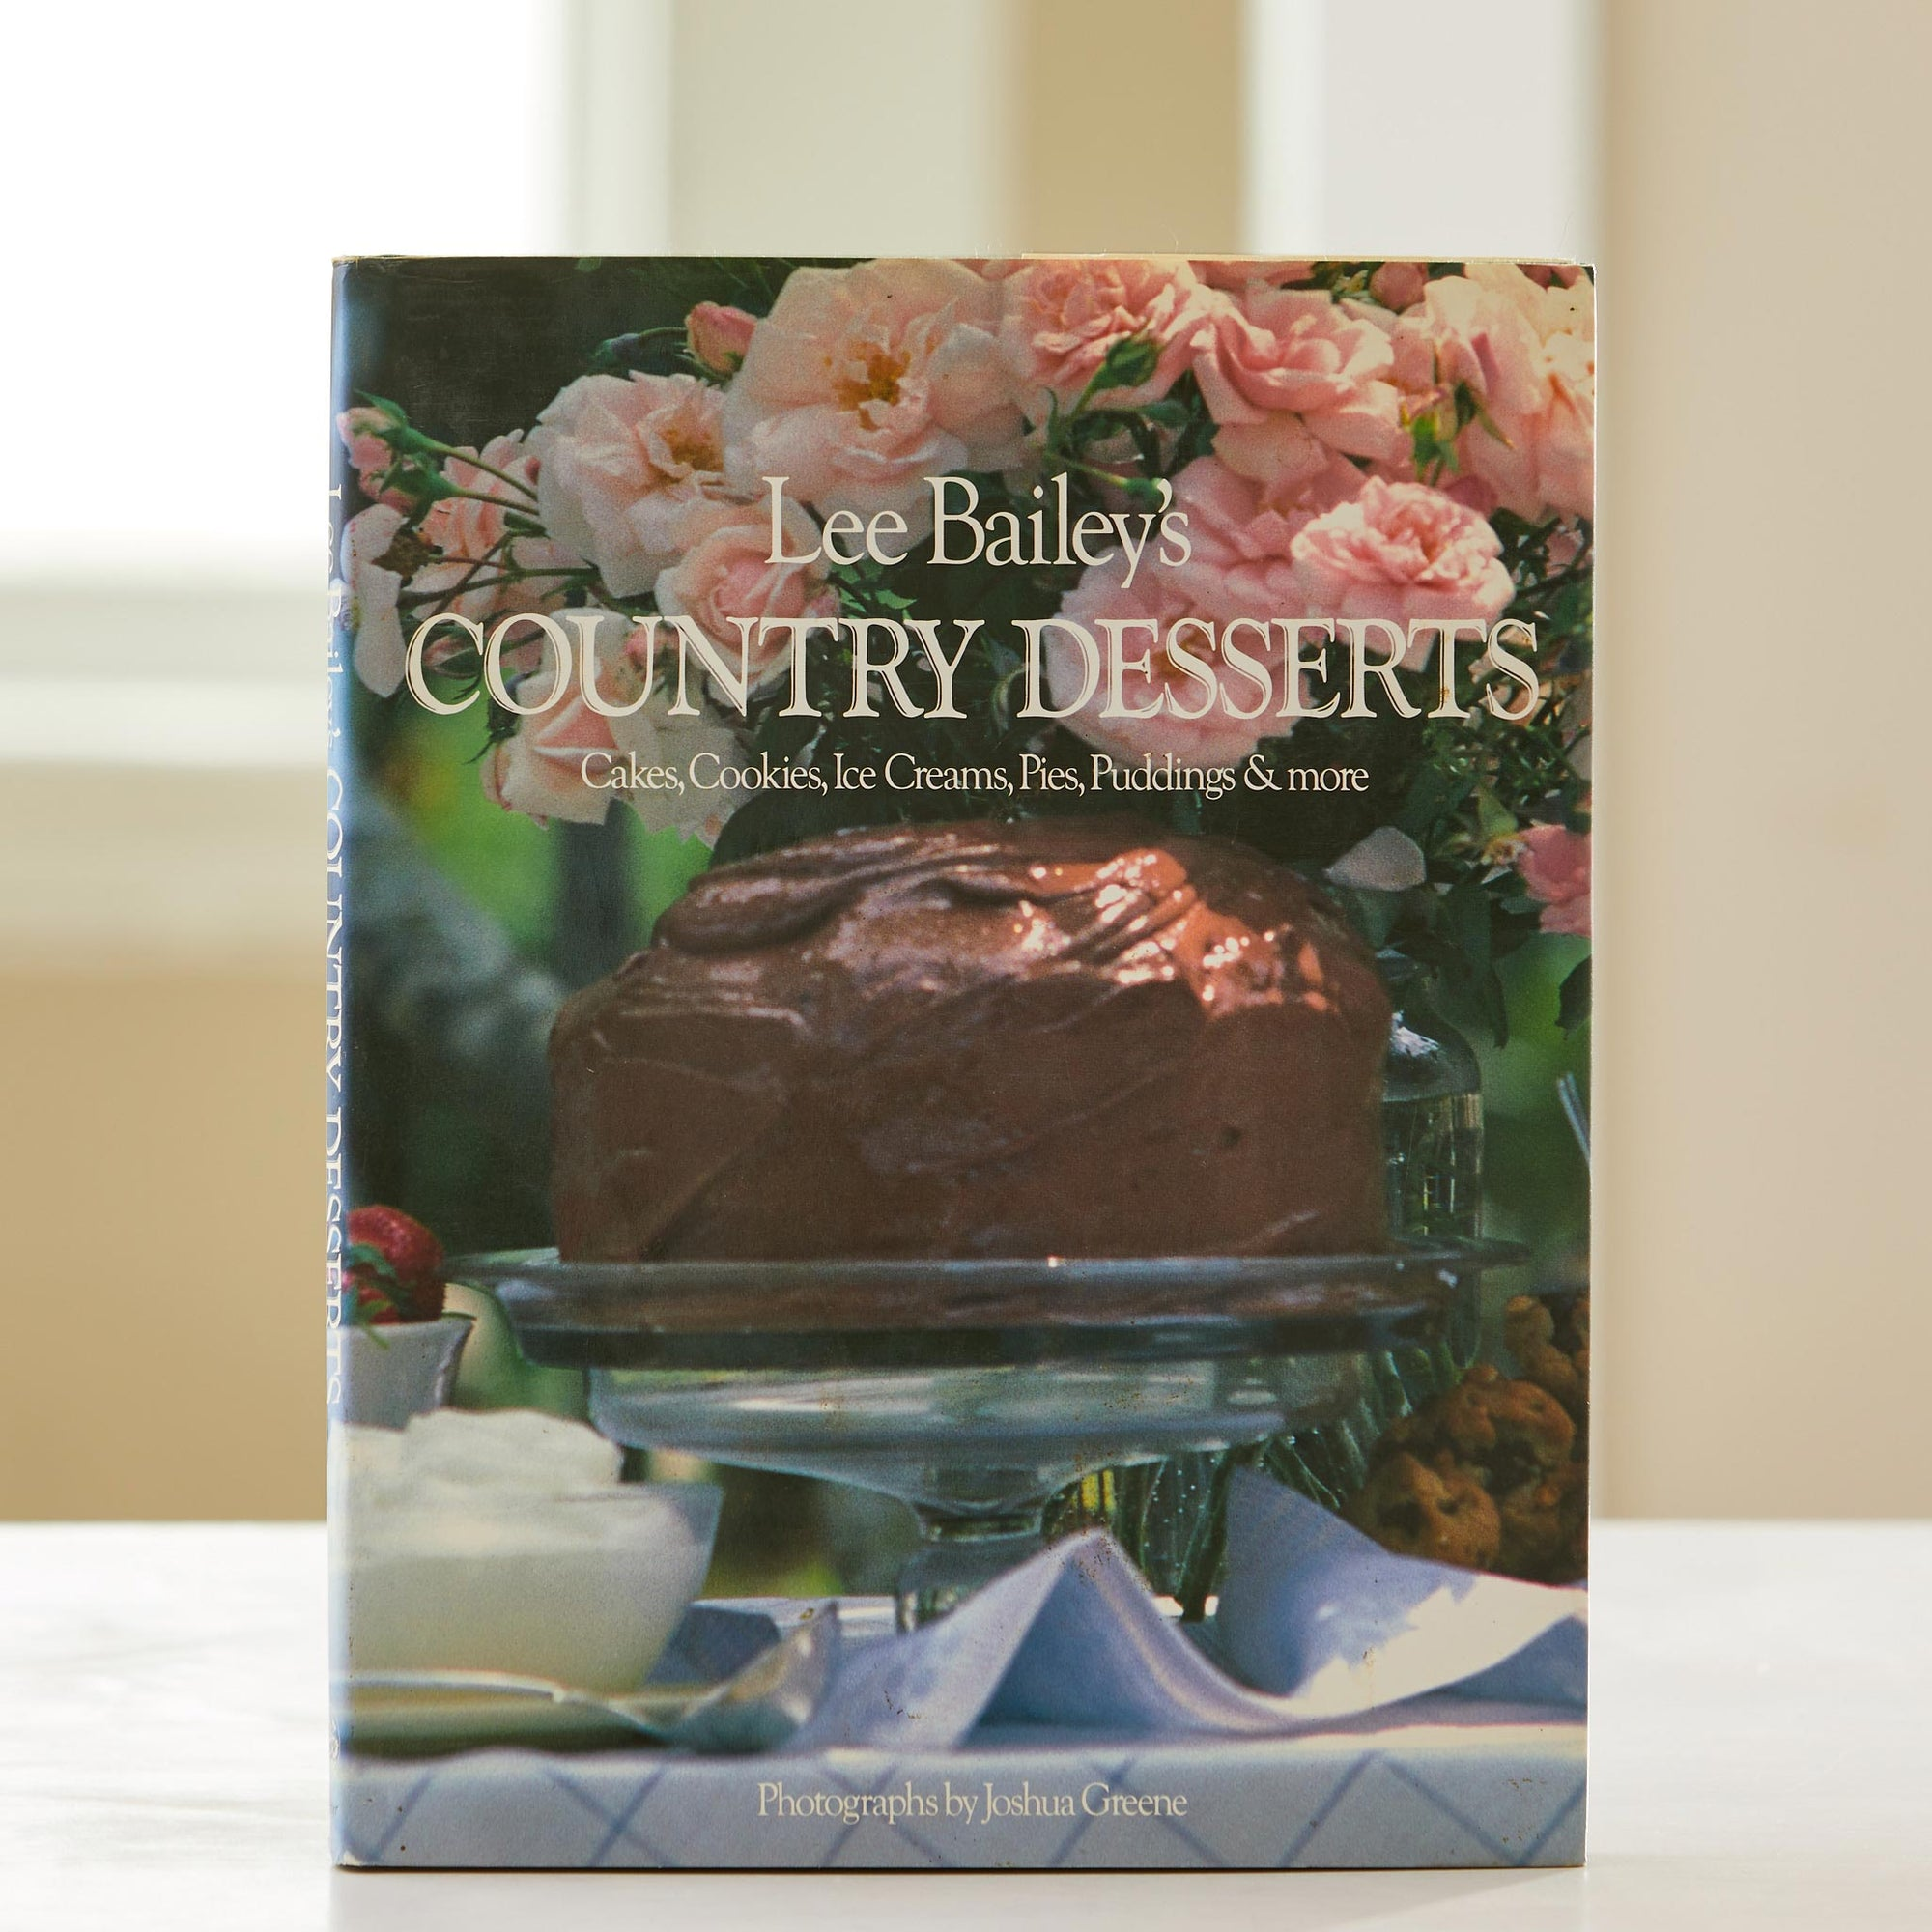 Lee Bailey's County Desserts. Cakes, cookies, Ice Creams, Pies, Cobblers, need we keep going? Find your best country kitchen dessert dreams here.